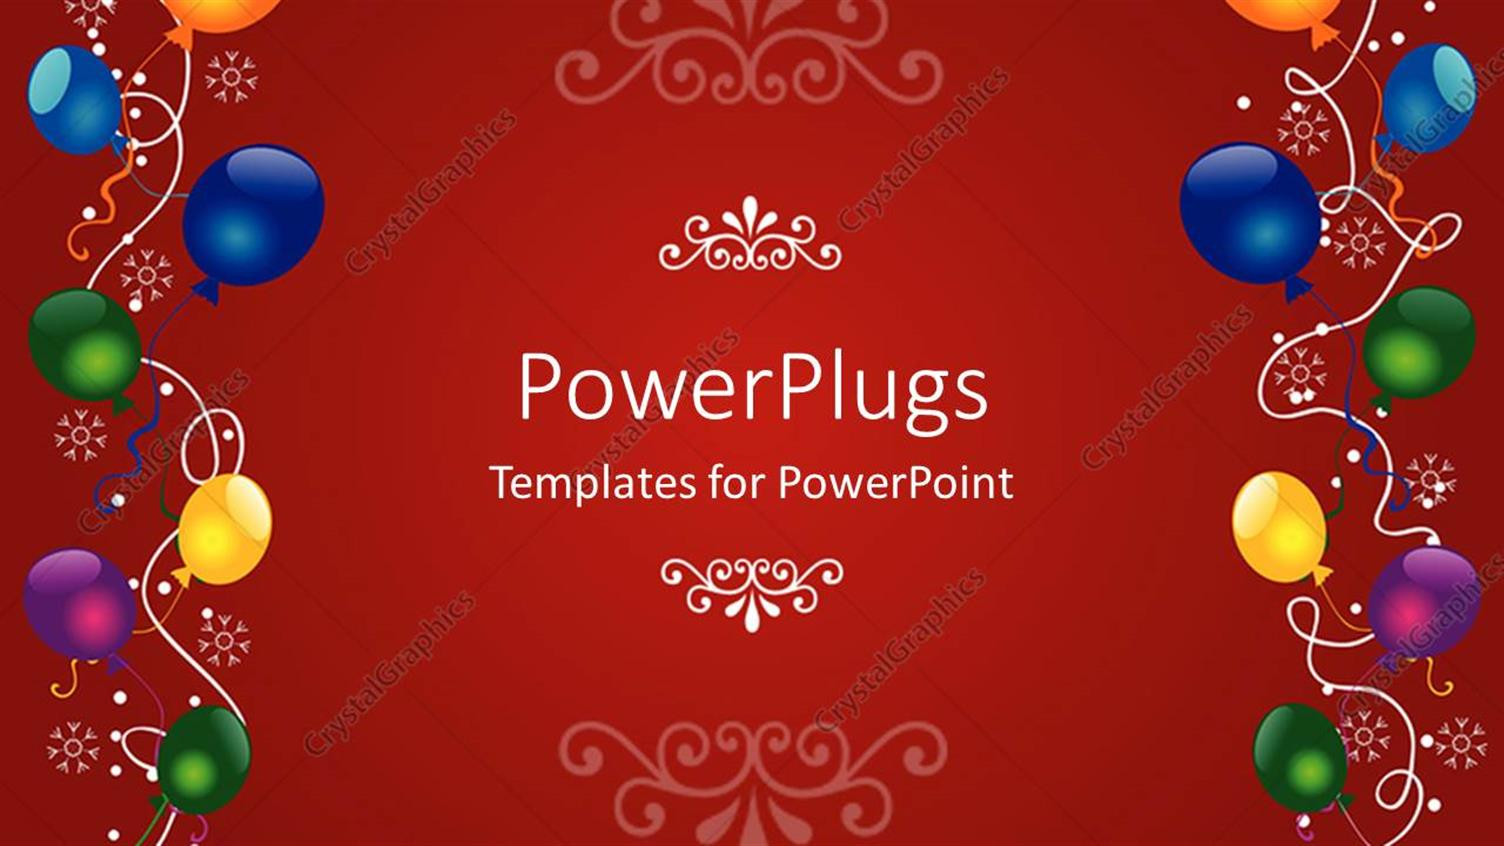 PowerPoint Template Displaying a Birthday Celebration with Reddish Background